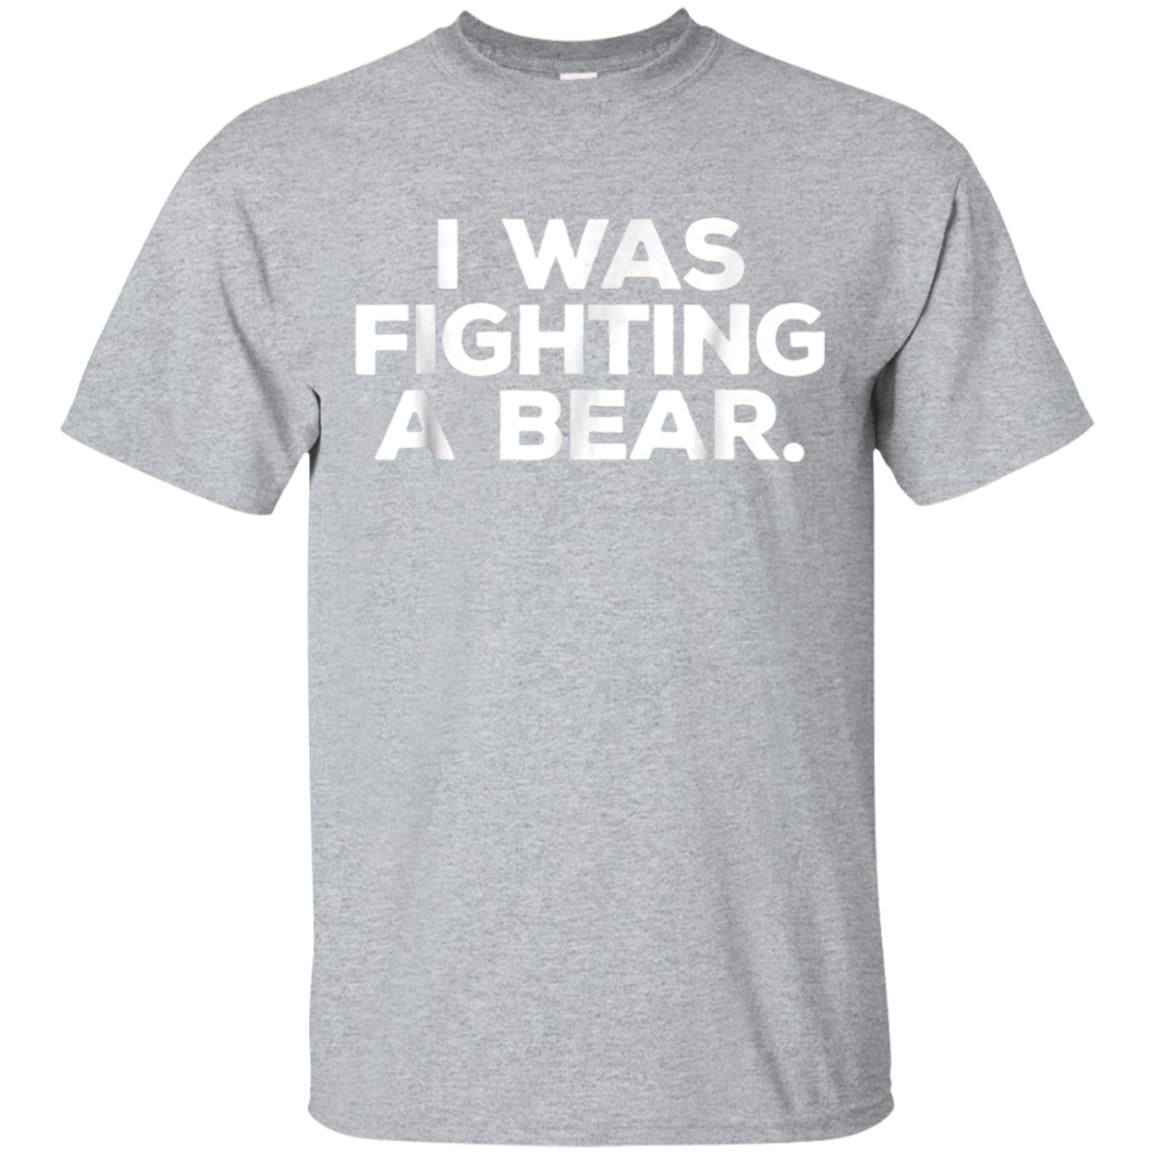 Funny Injury Shirt - I was fighting a bear - Get Well Gift 99promocode